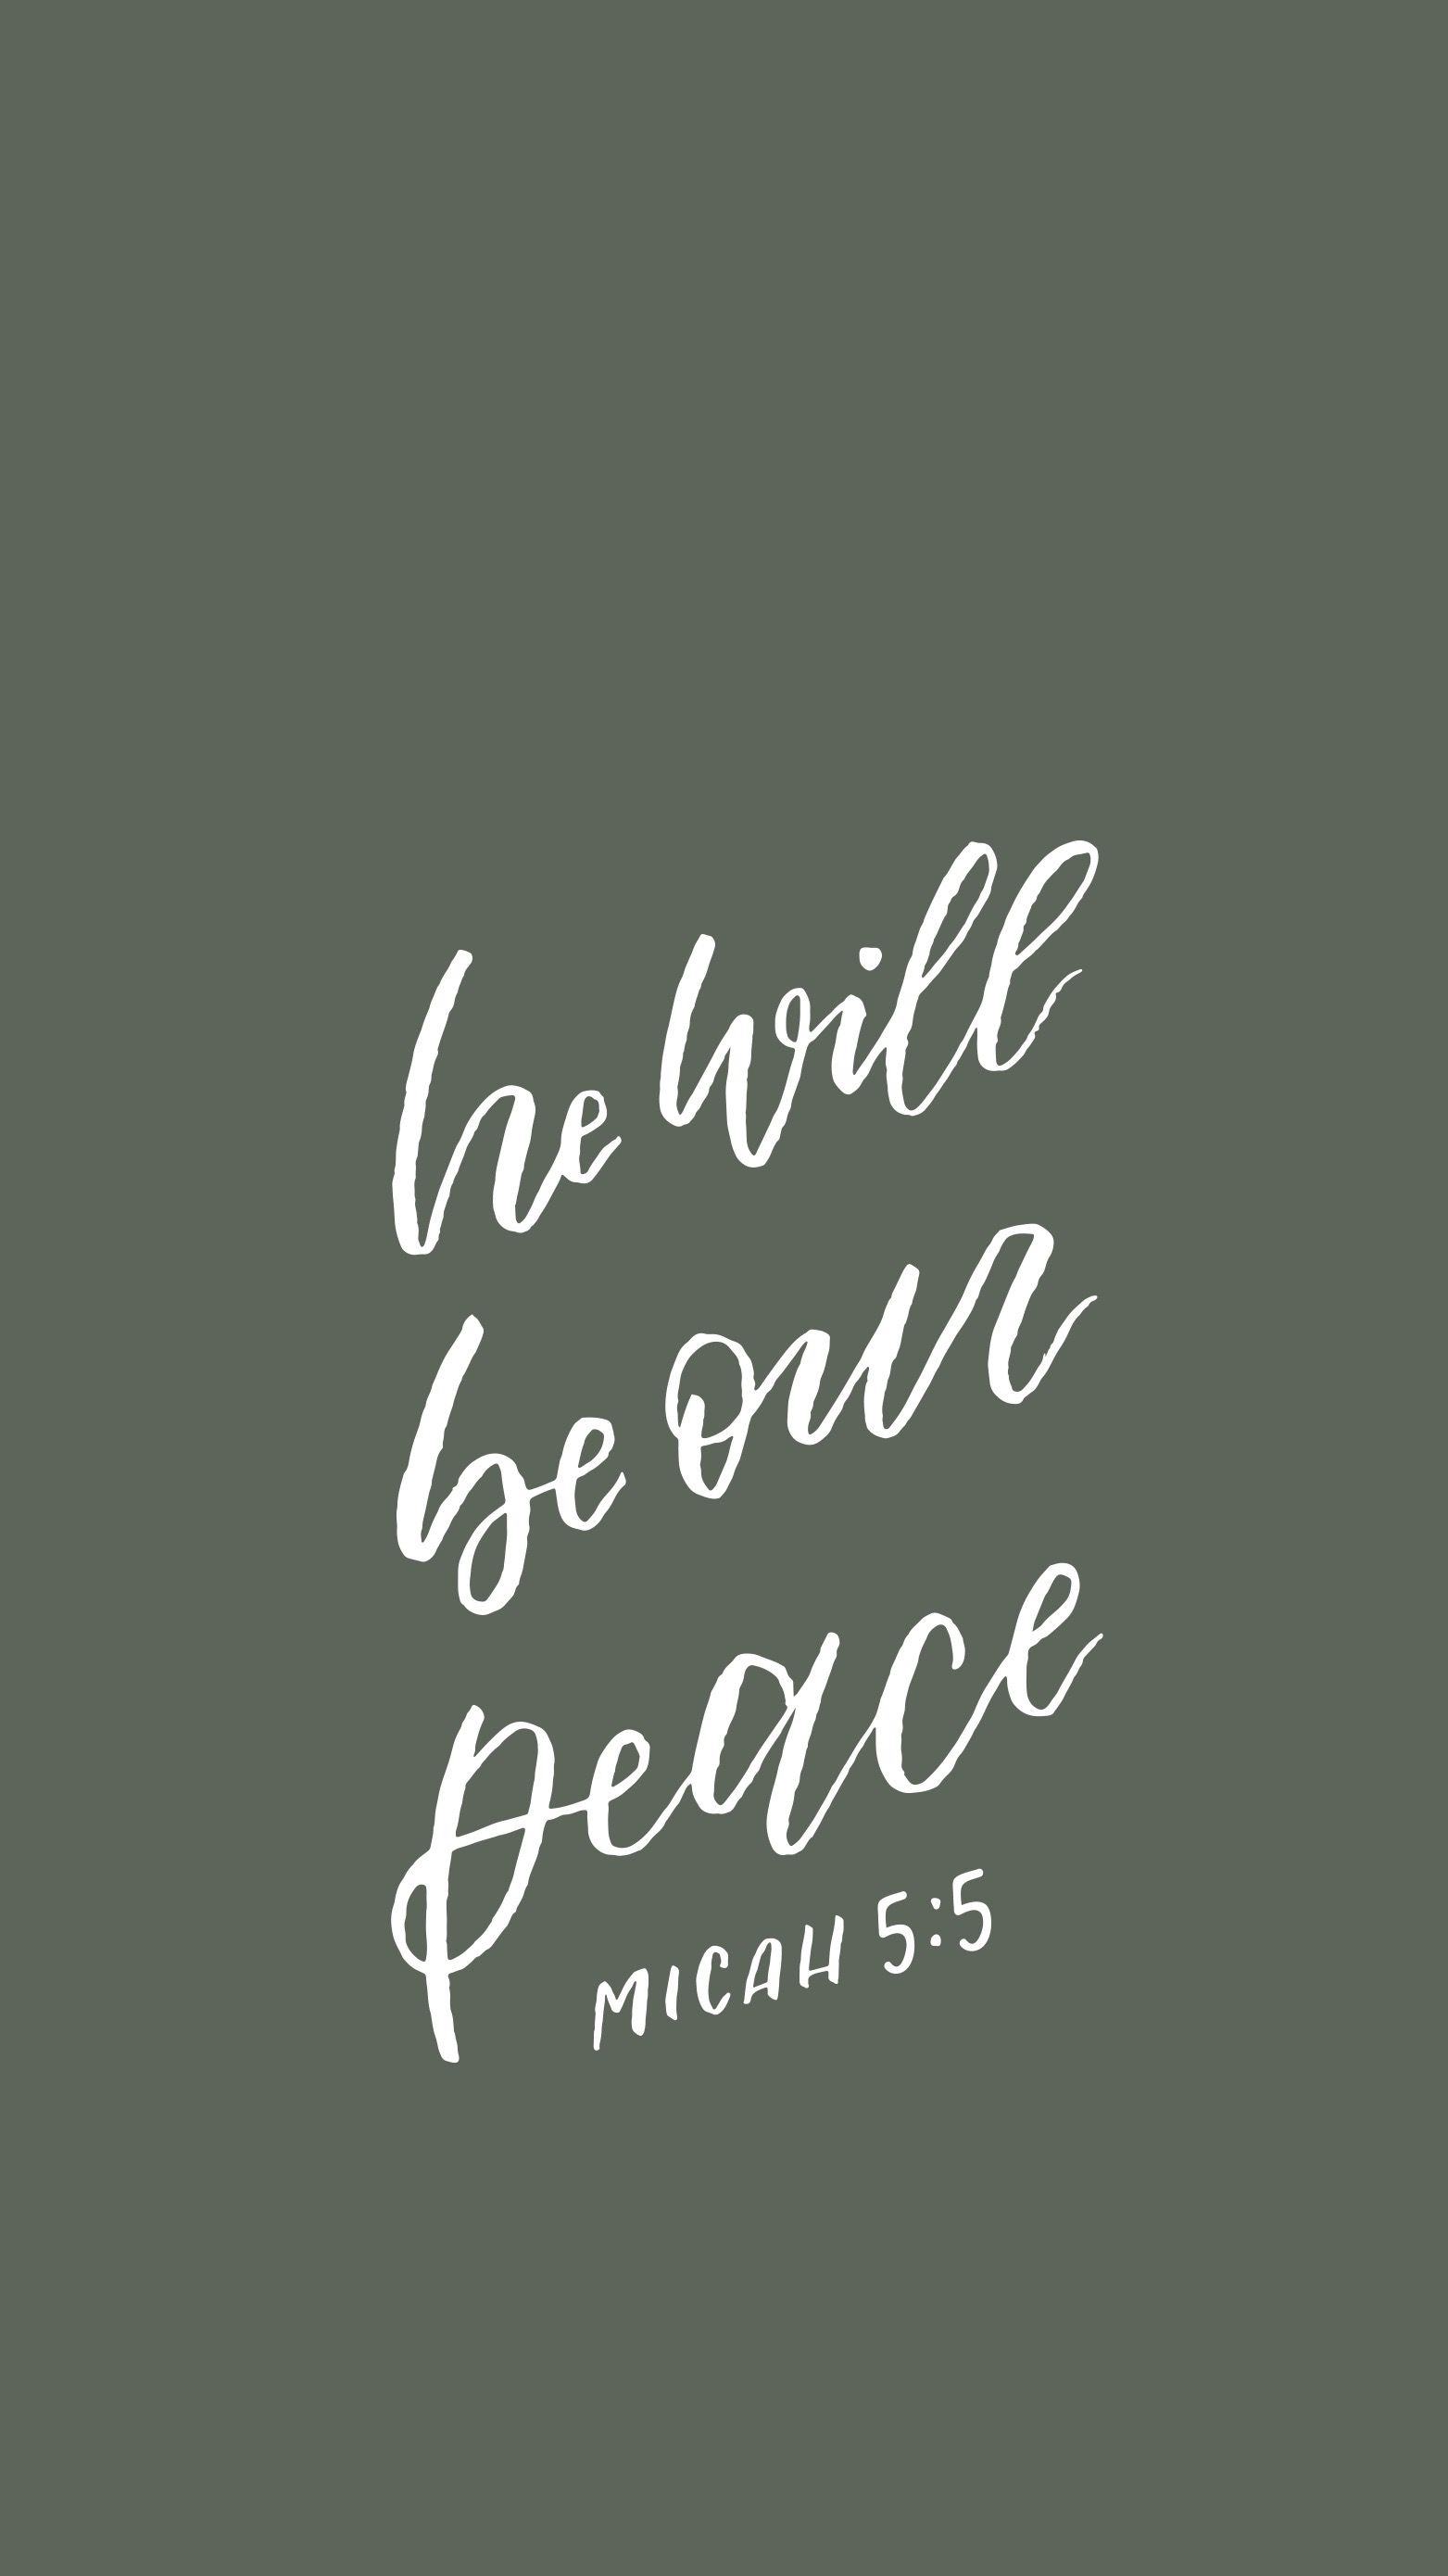 Wallpaper Bible Verse Posted By Samantha Johnson